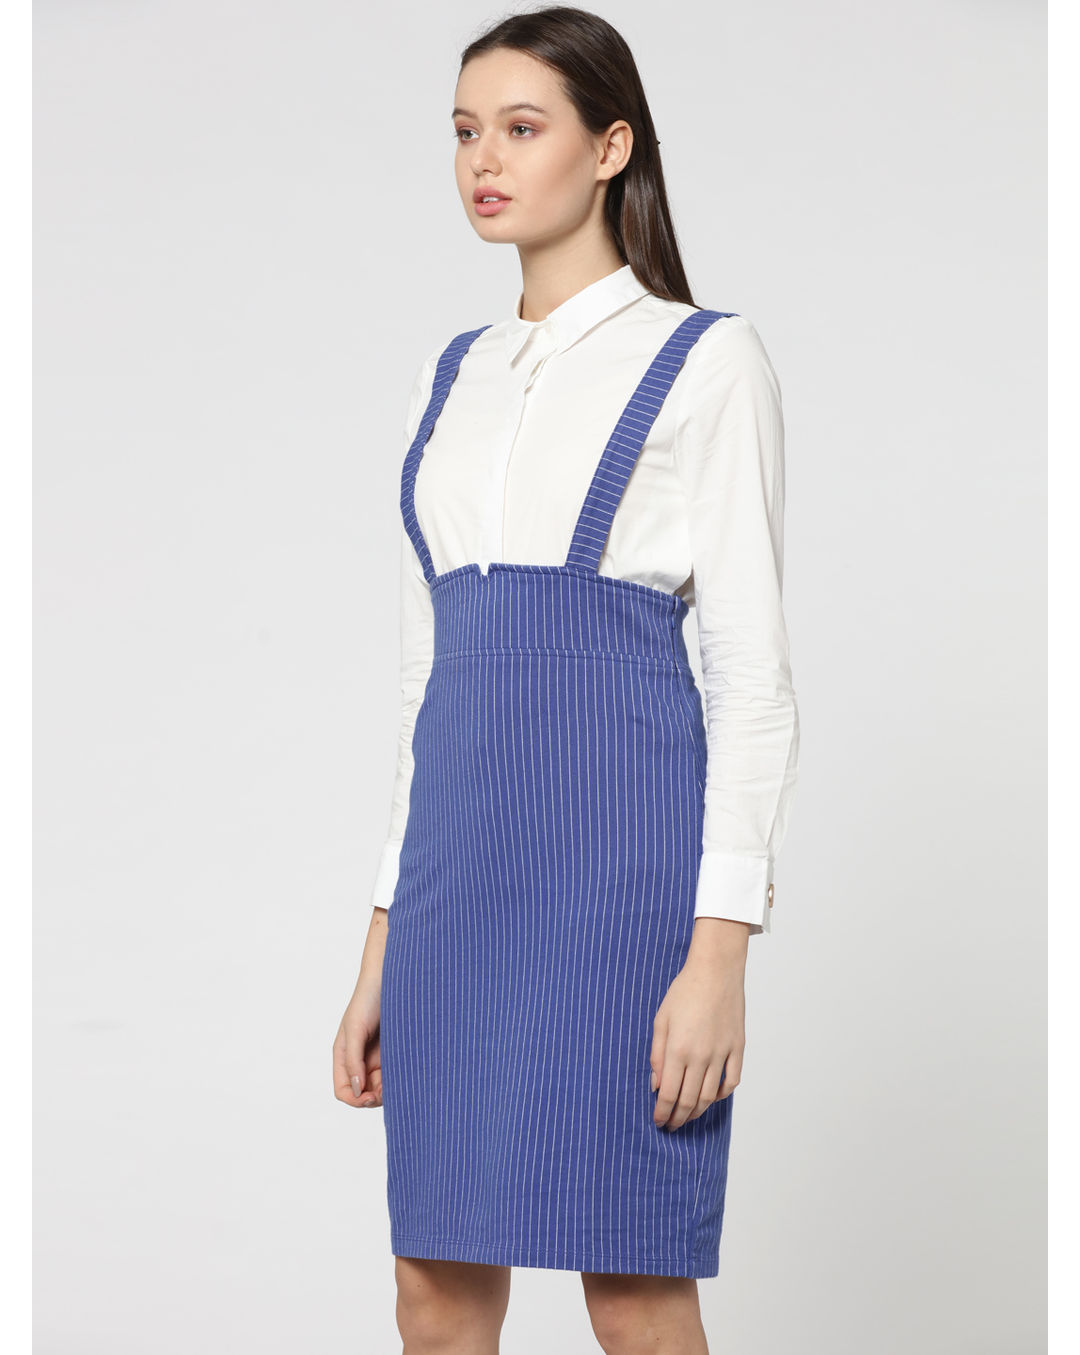 greatvarieties replicas new high quality Buy ONLY Blue Striped Dungaree Dress Online   Vero Moda